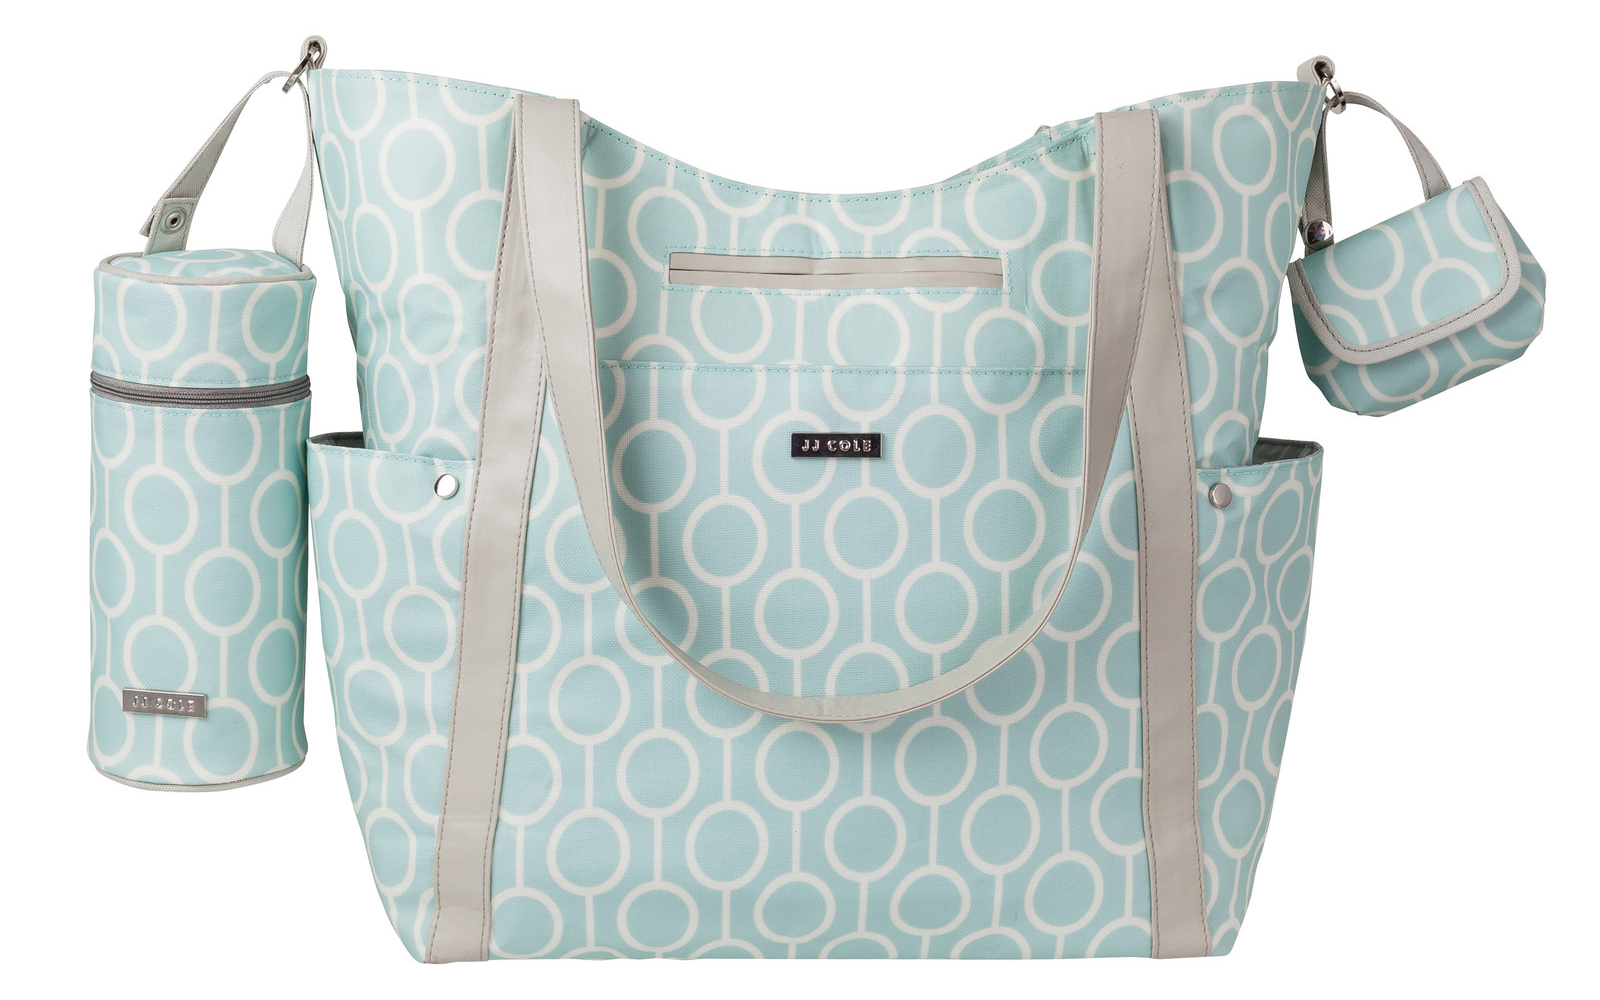 Aqua Radian Bucket Tote from JJ Cole